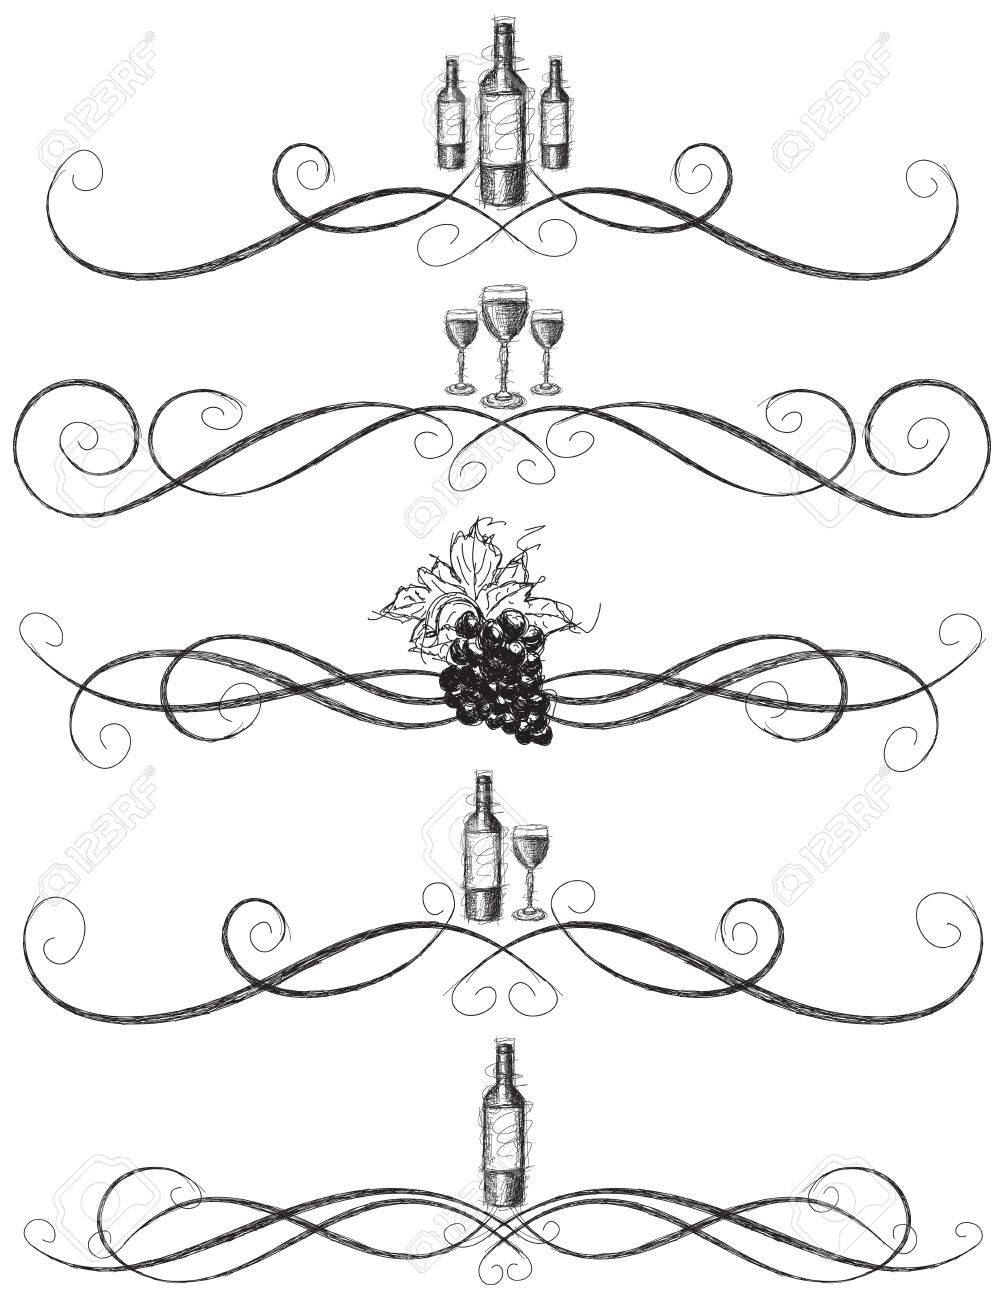 Sketchy wine scrollwork, Sketchy, hand drawn wine bottle, wine glasses, and grapes with decorative vine scrolls - 36929292